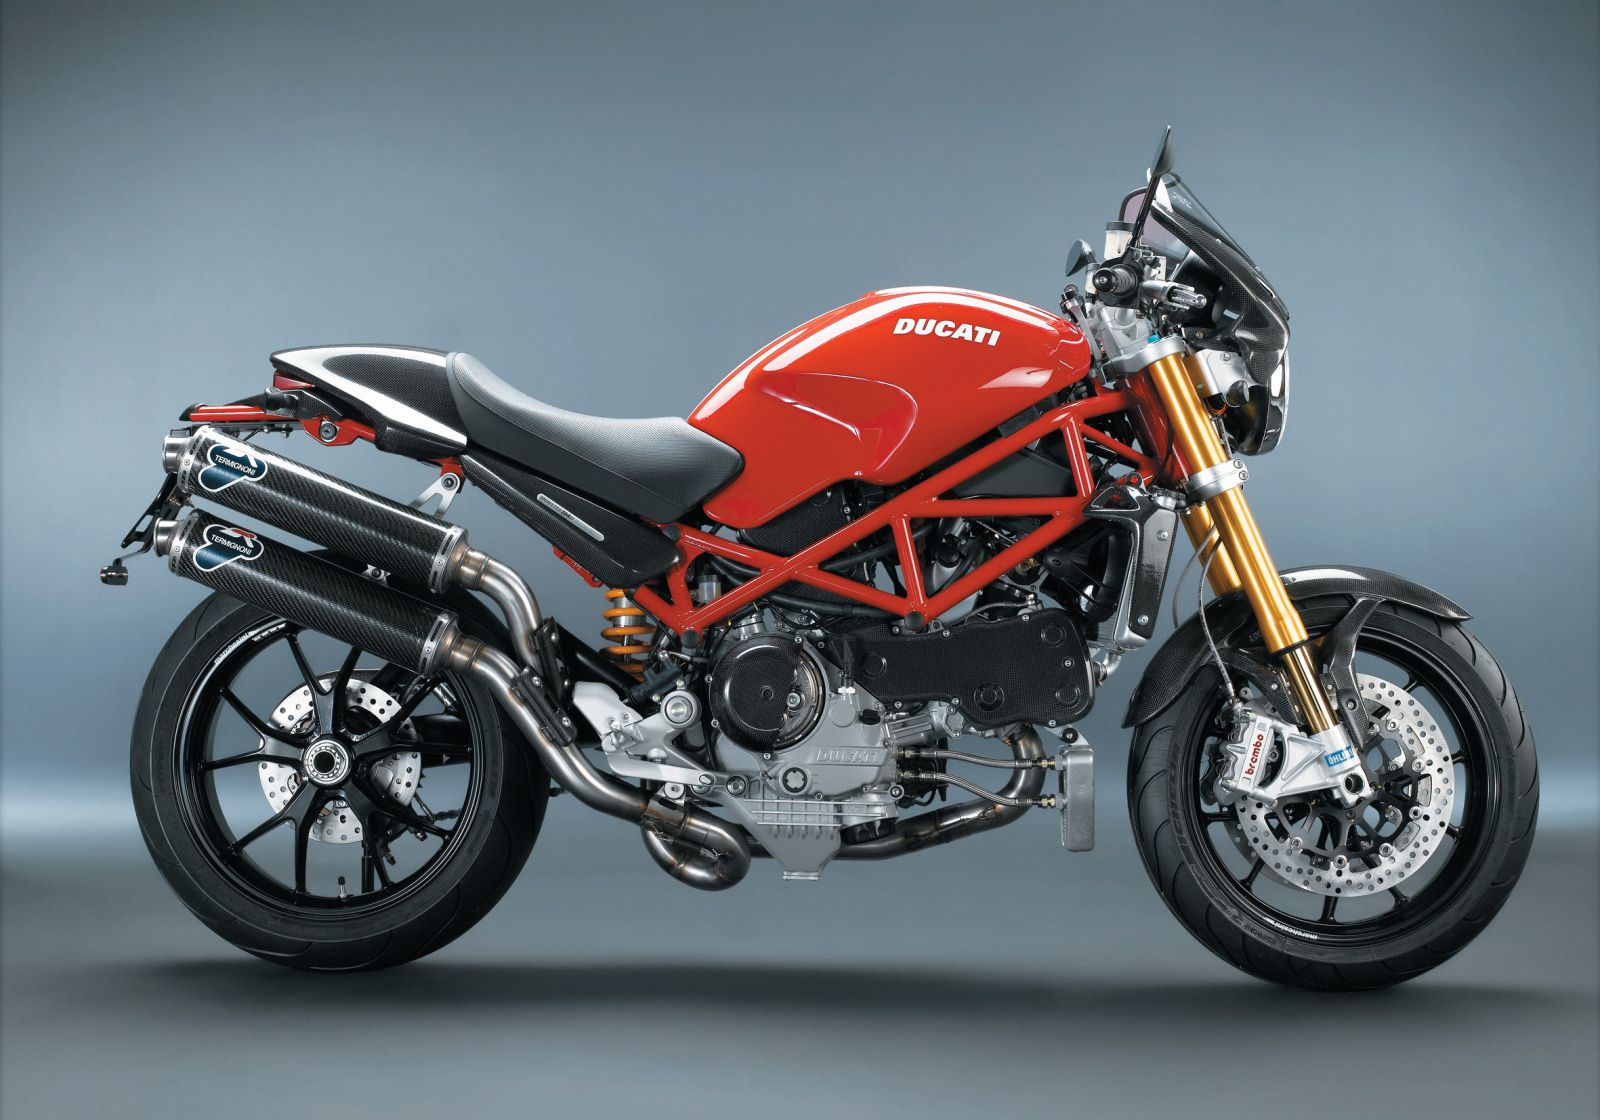 What Is The Ducati Culture